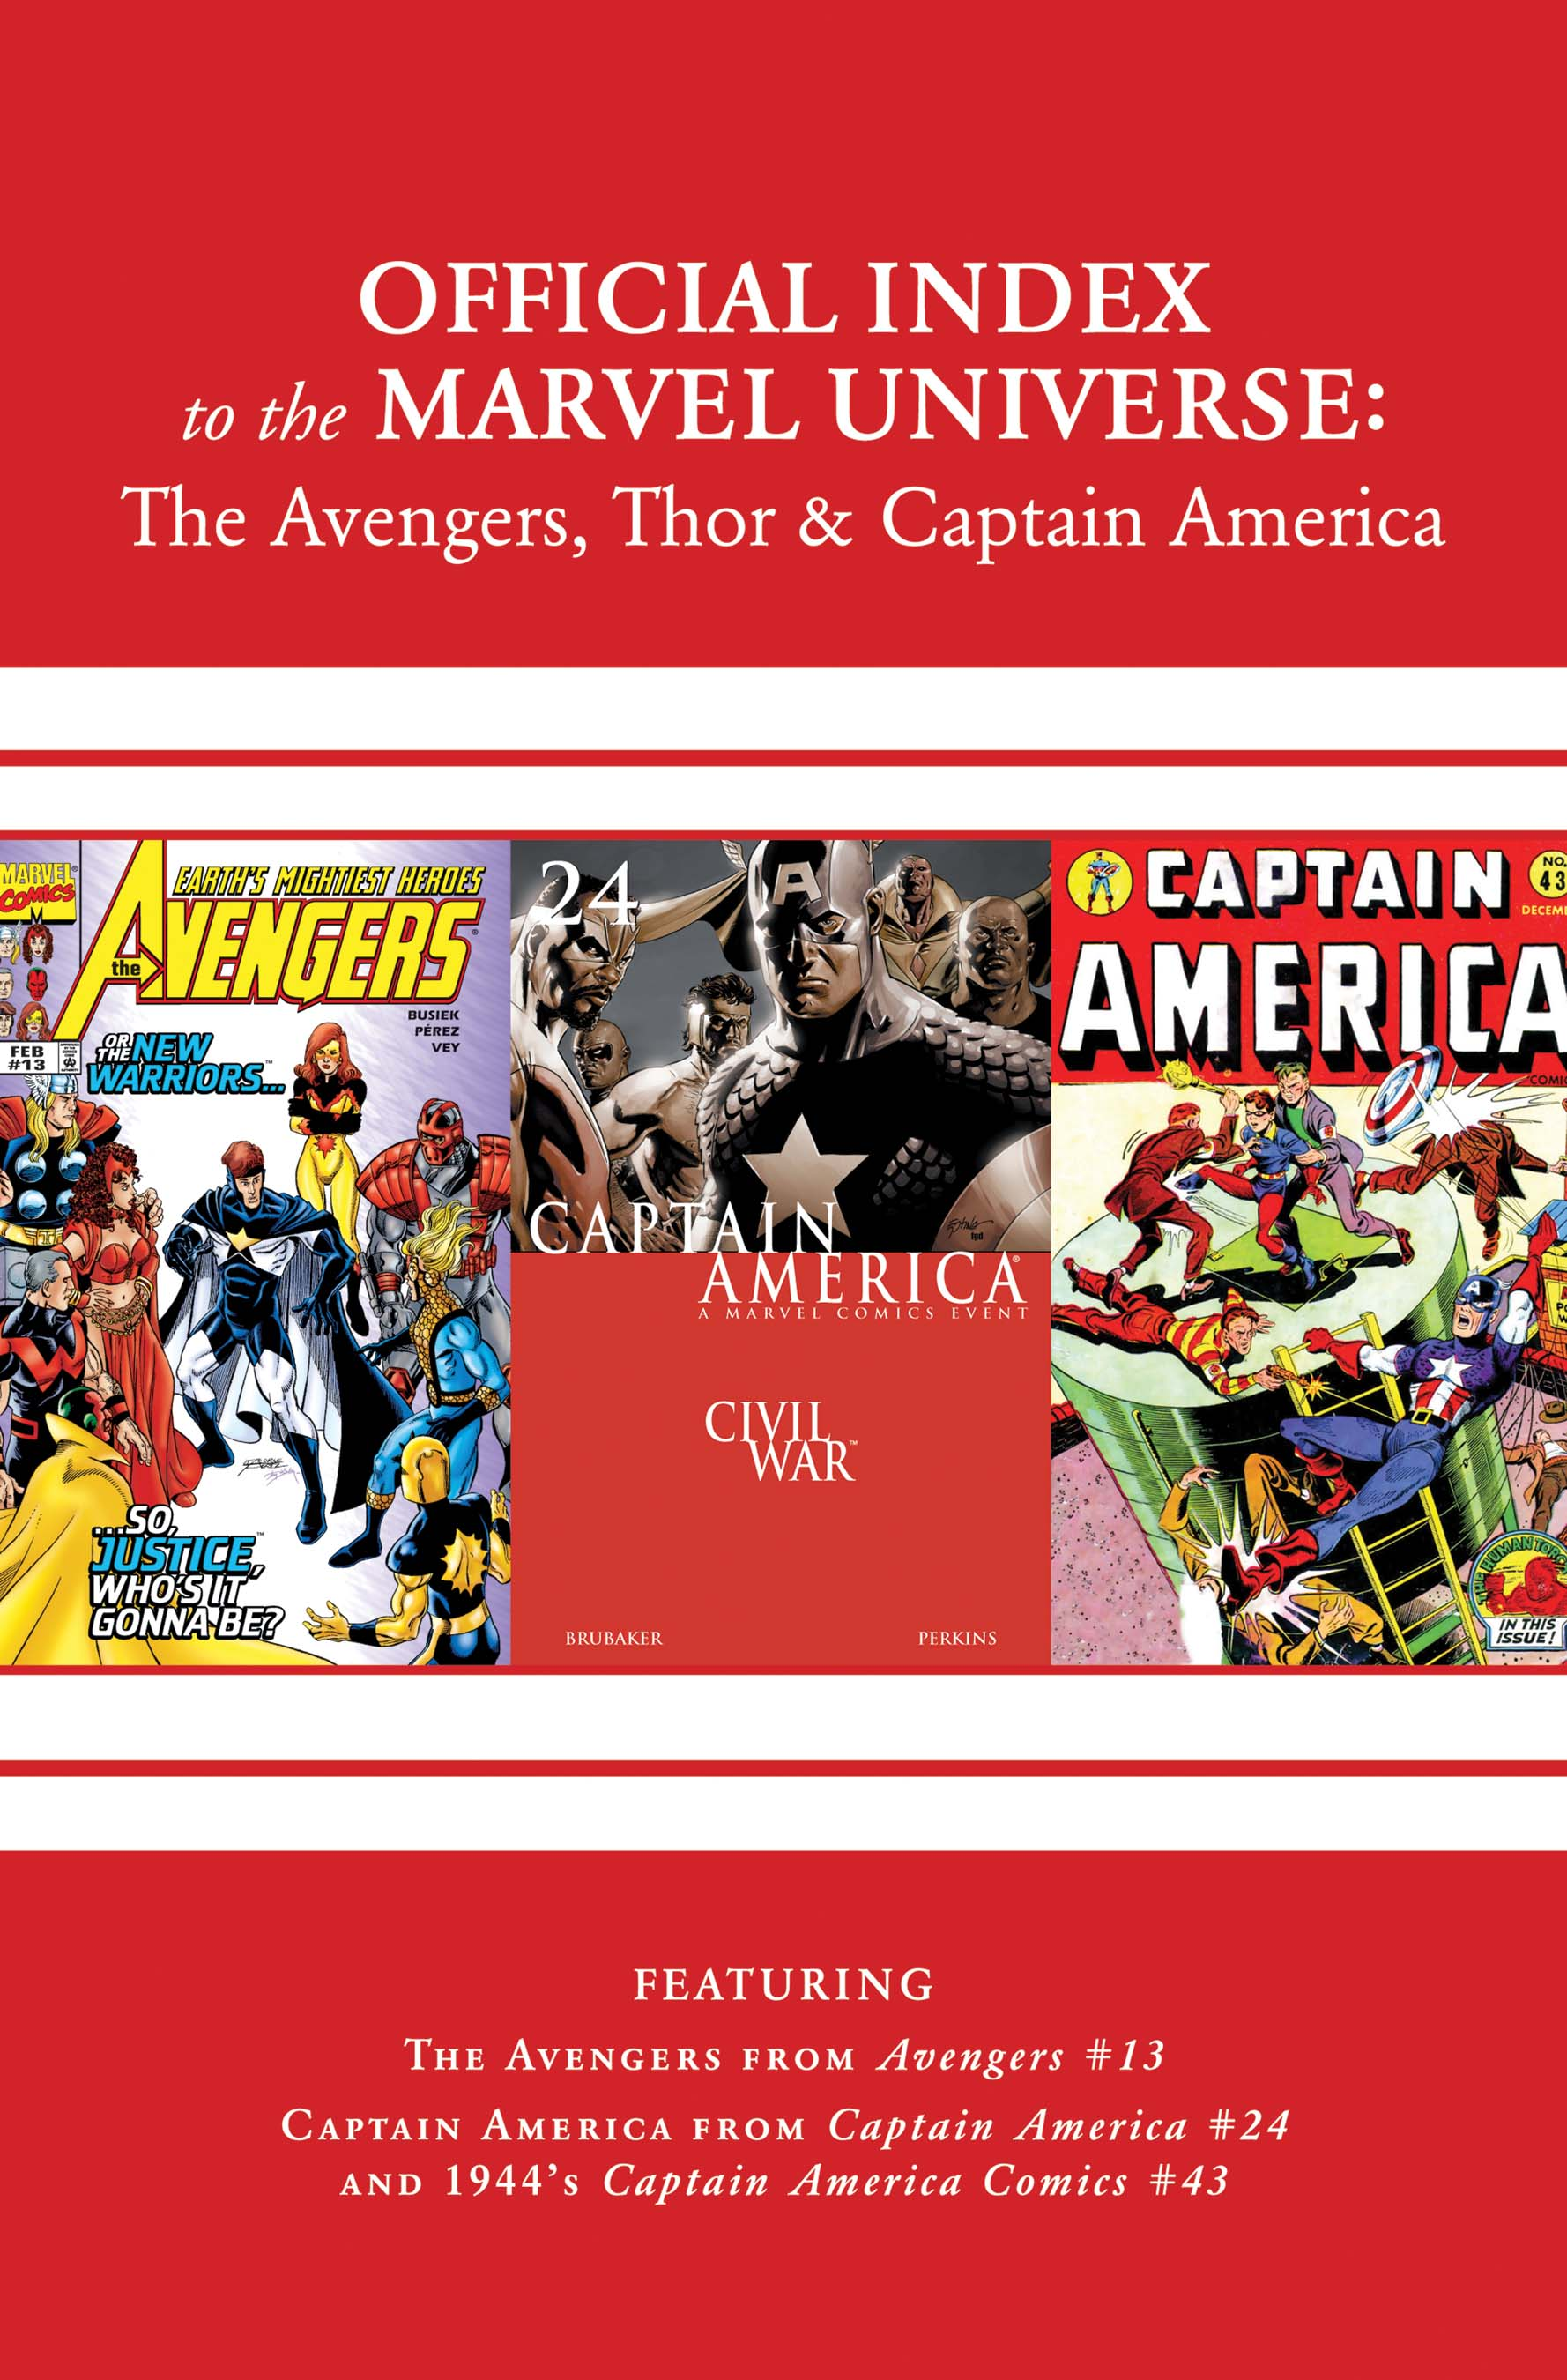 Avengers, Thor & Captain America: Official Index to the Marvel Universe (2011) #14